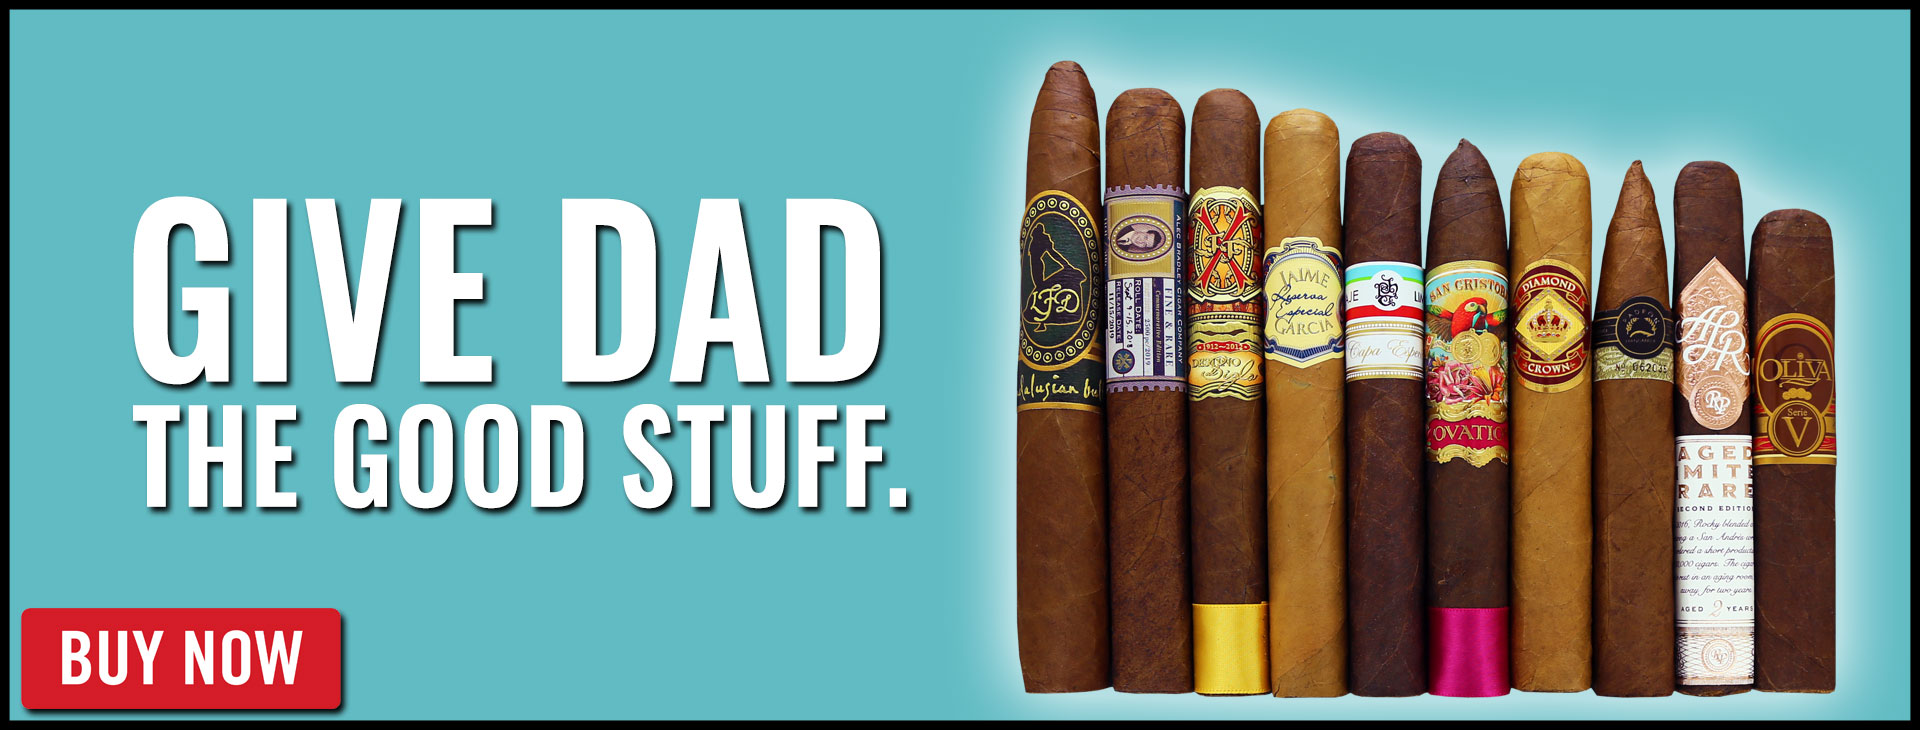 fathers-day-cra-2021-banner.jpg